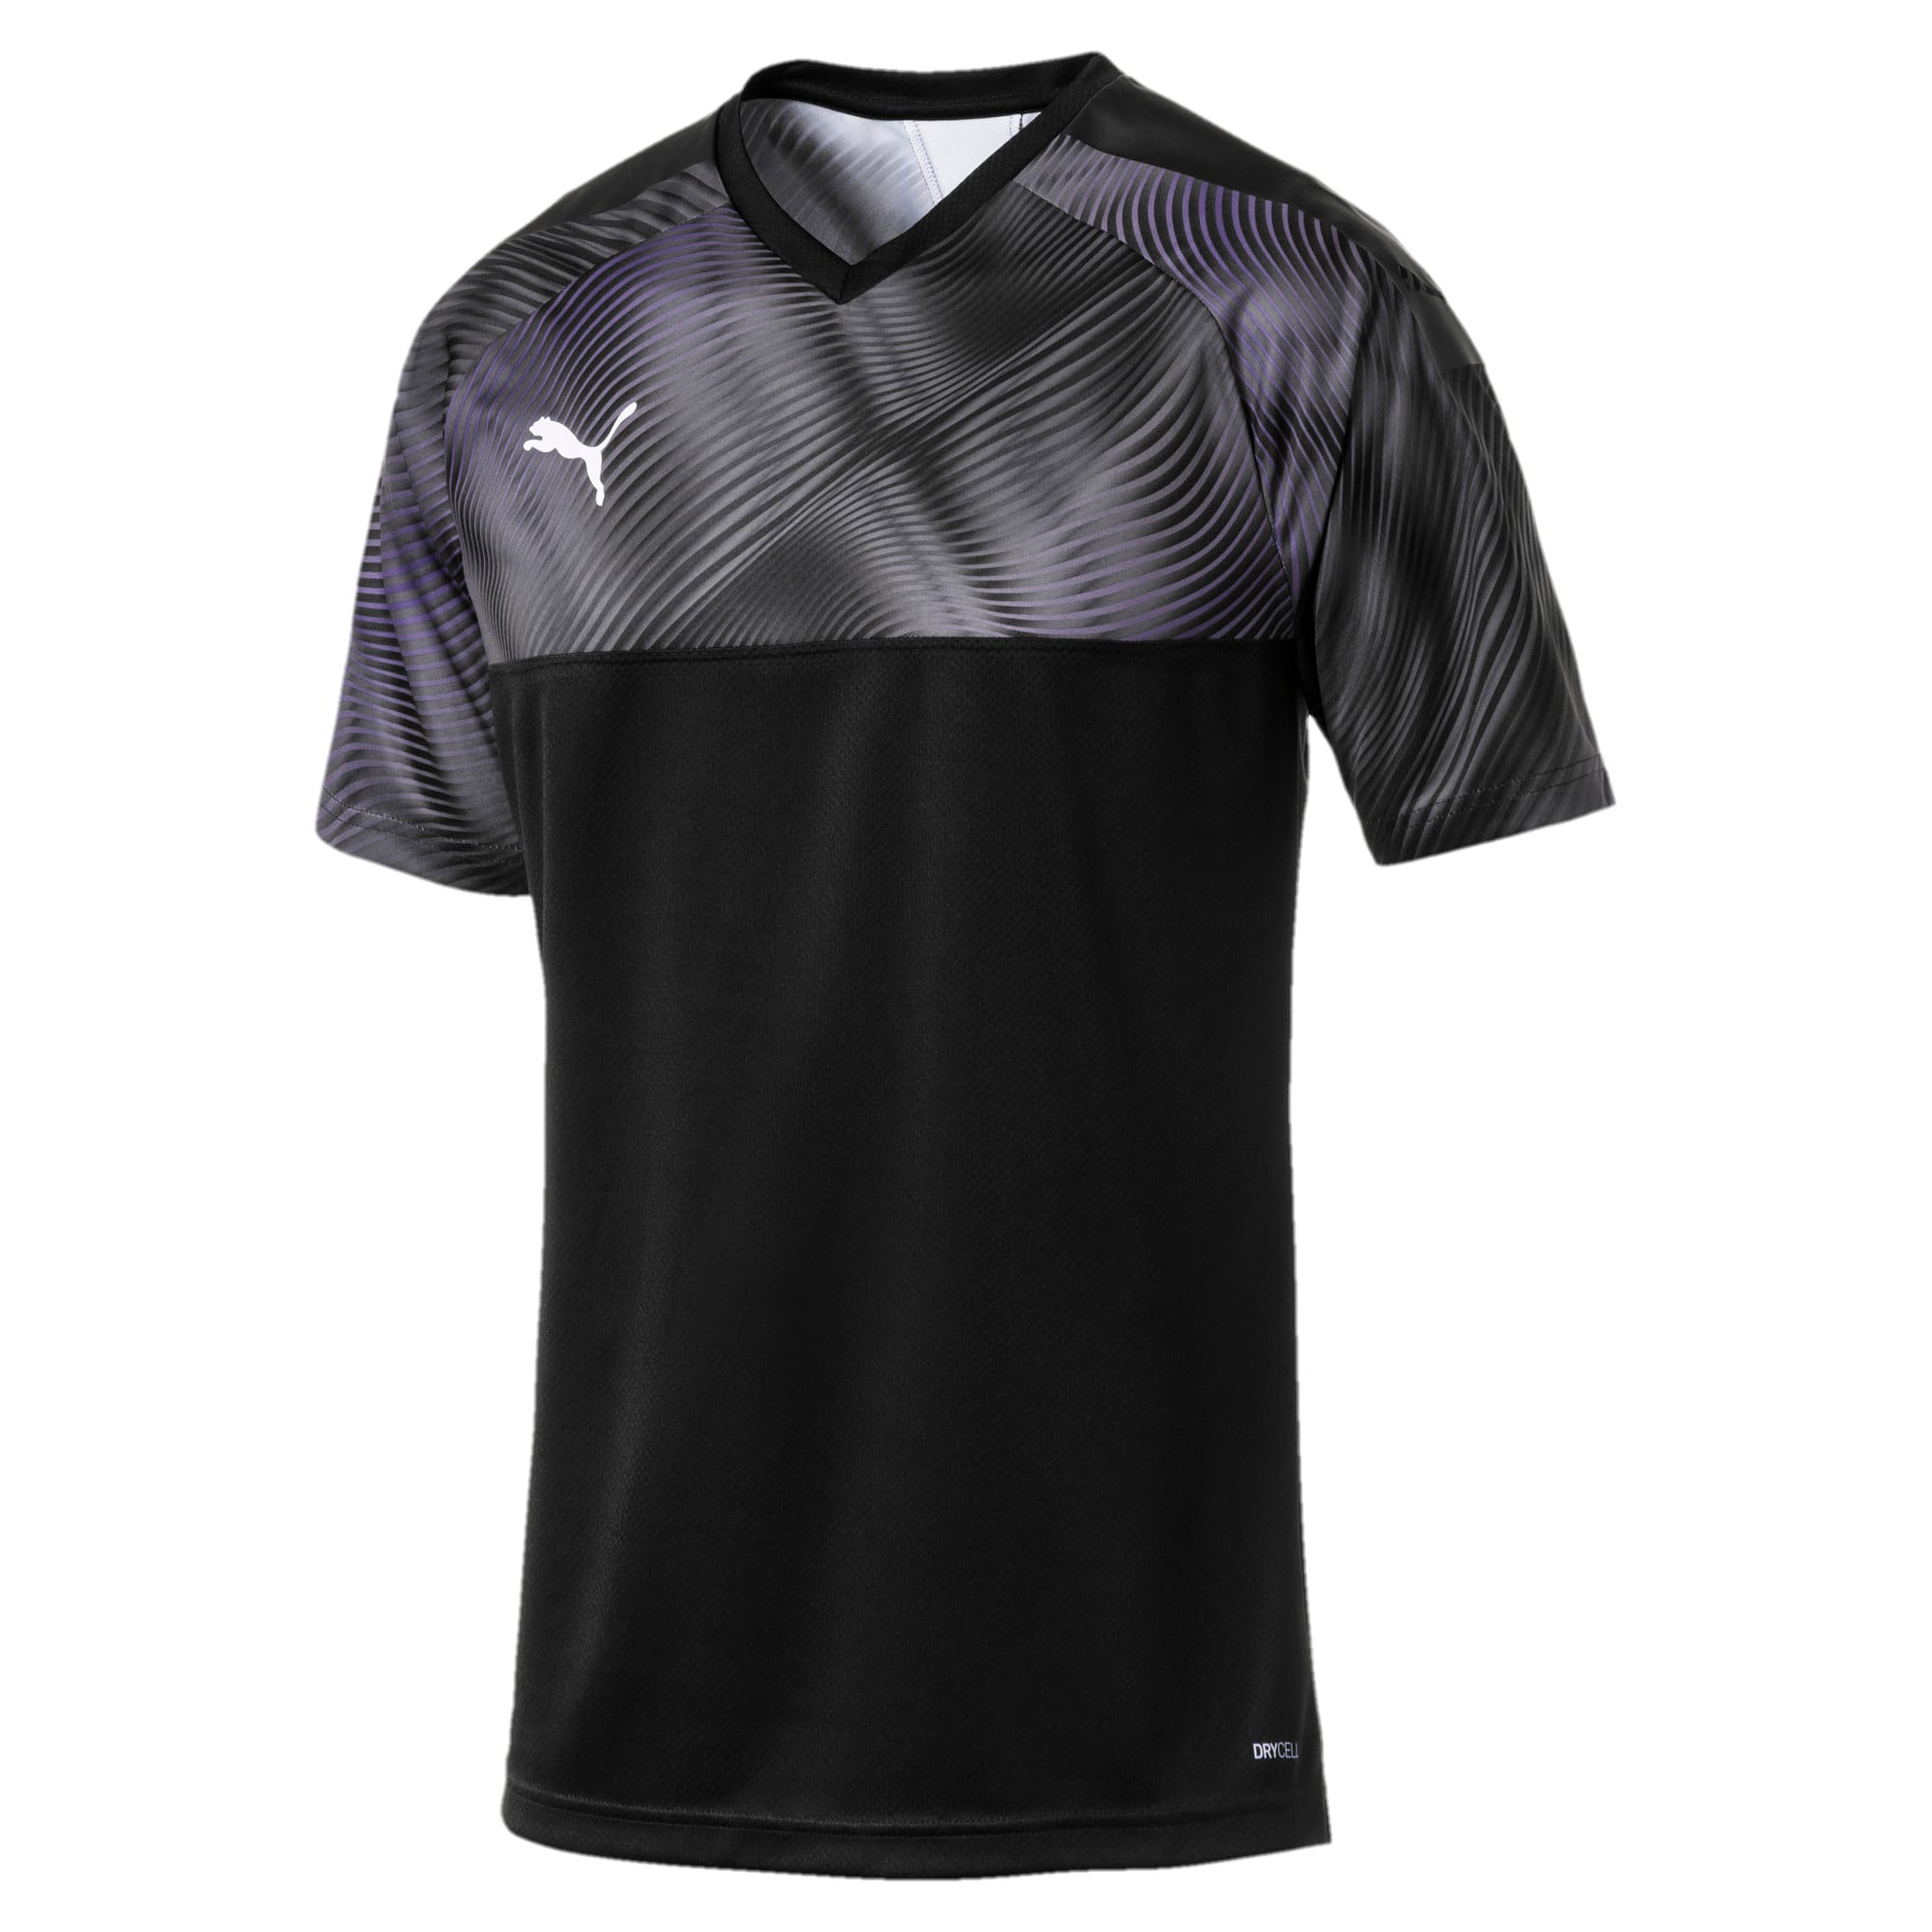 CUP Men's Football Jersey, Puma Black-Puma White, large